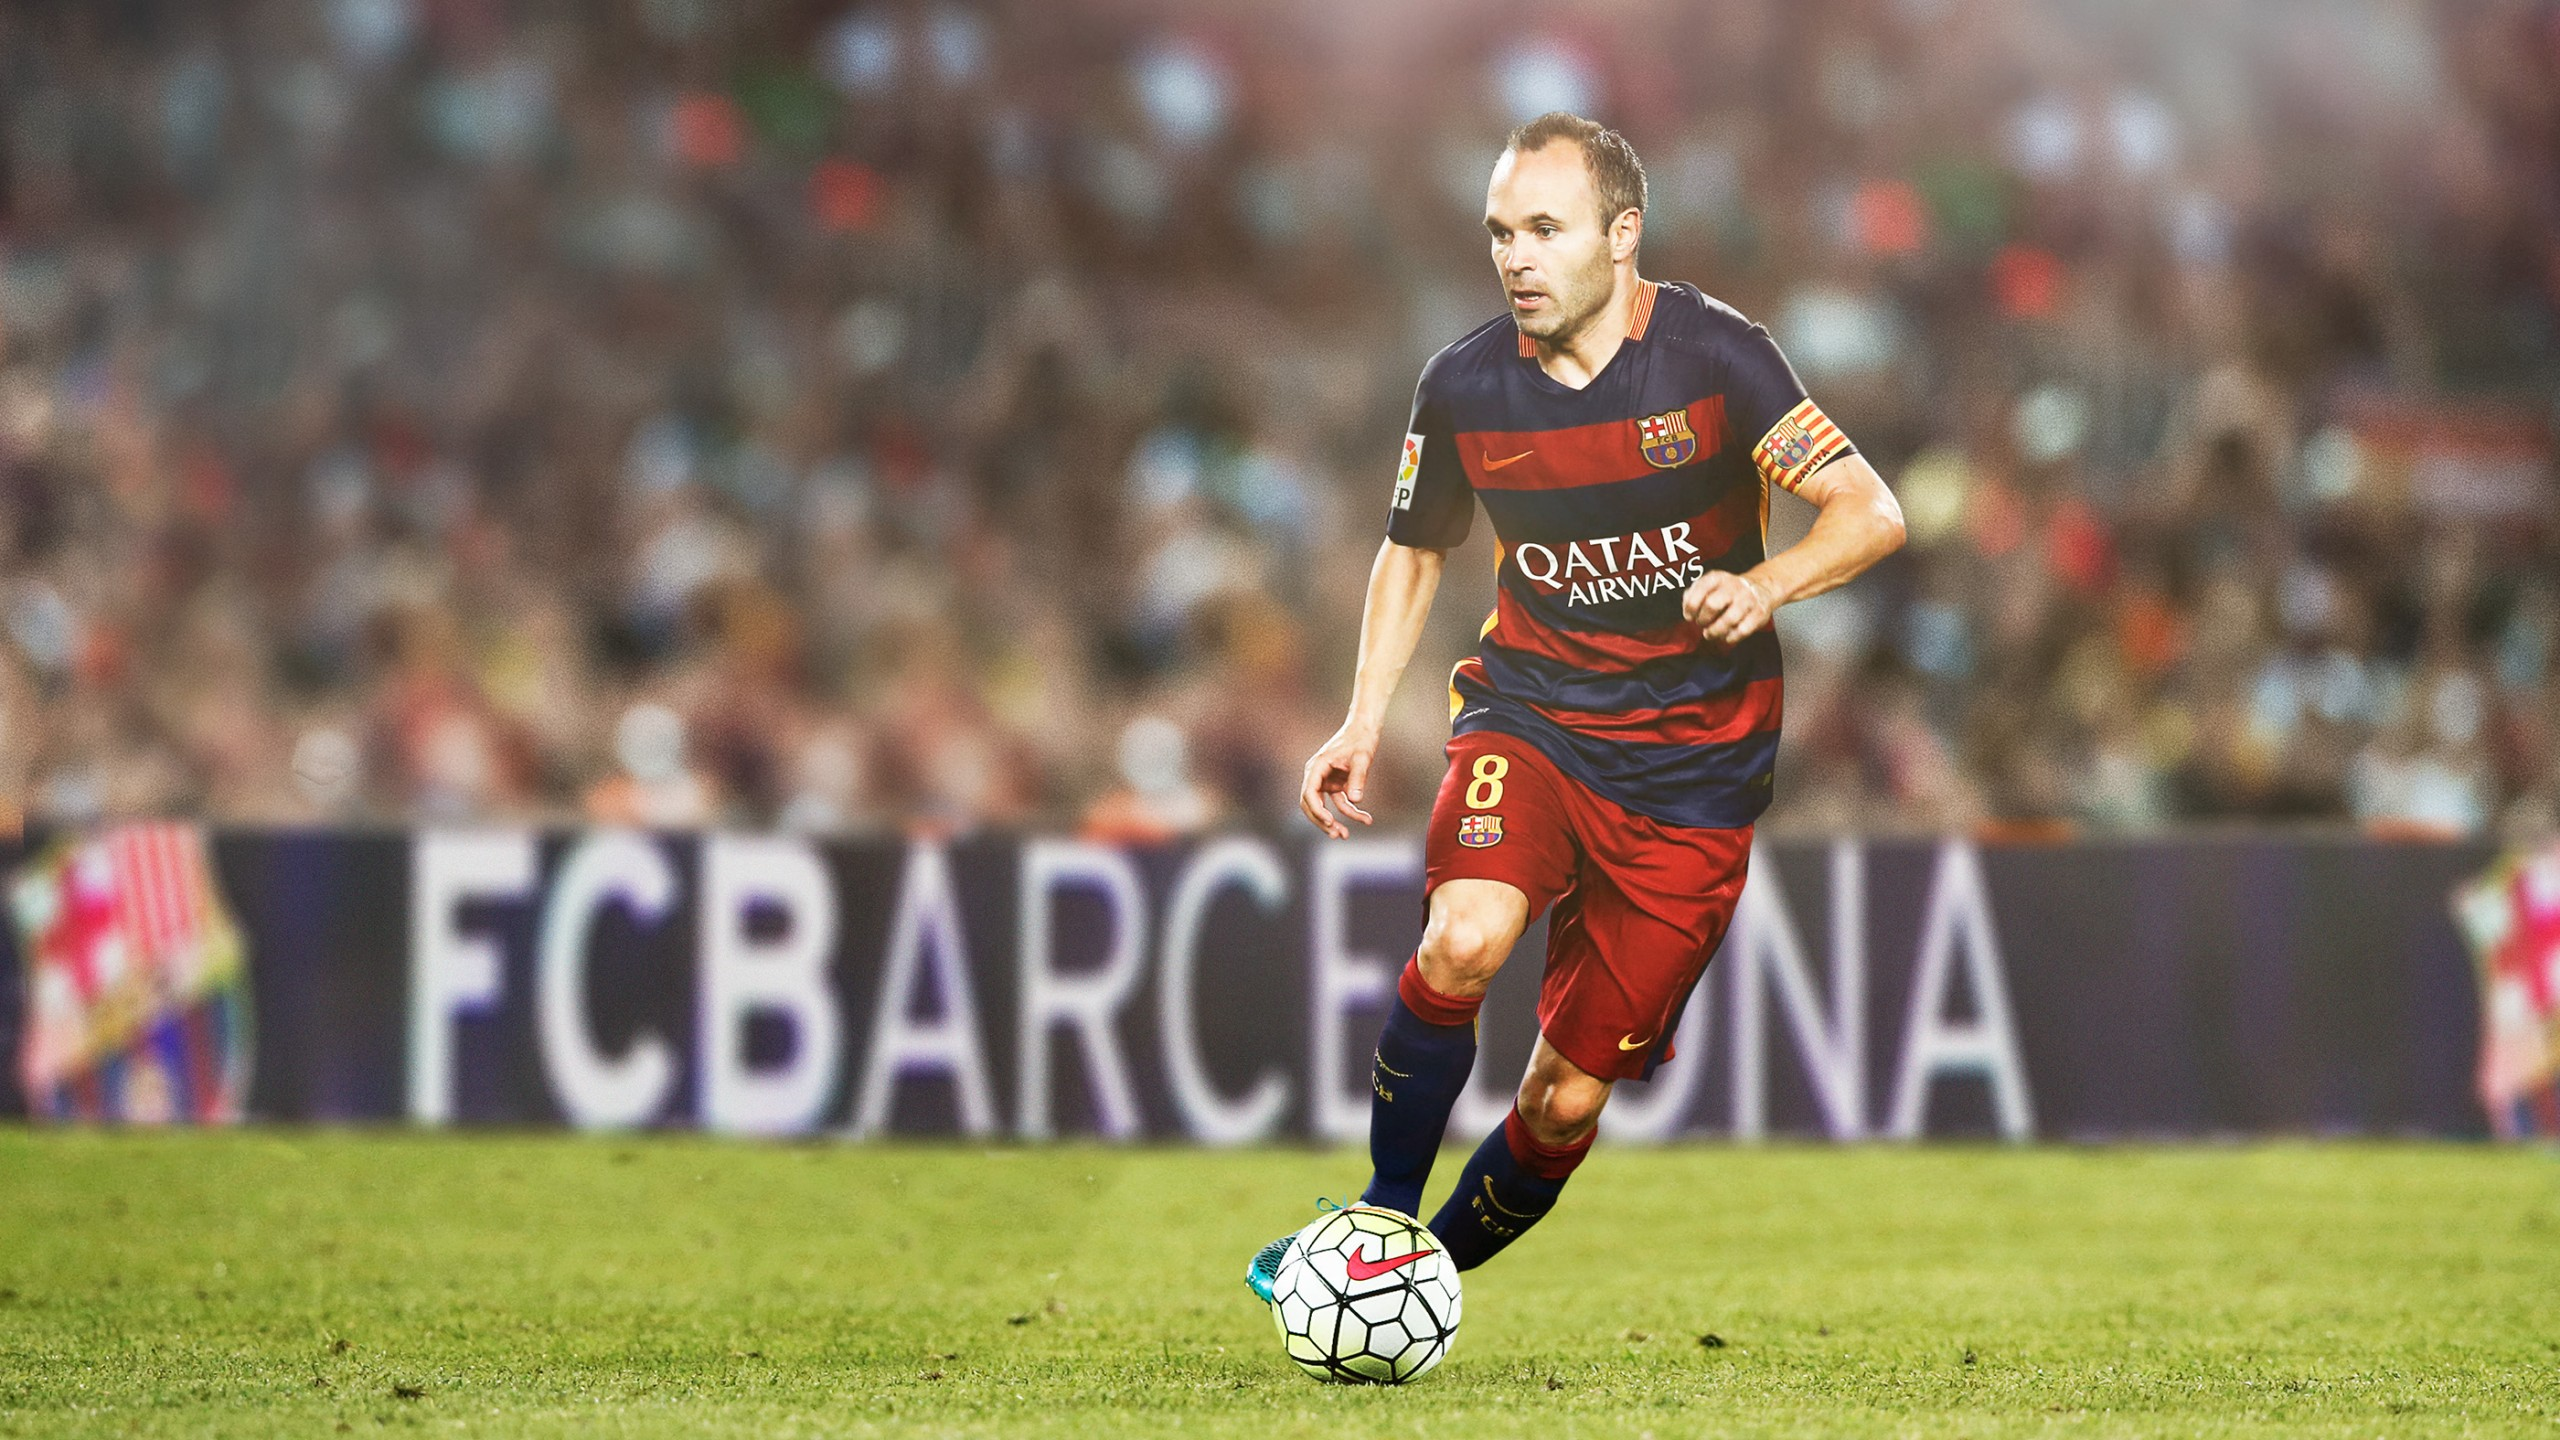 Andres Iniesta FC Barcelona HD Wallpapers